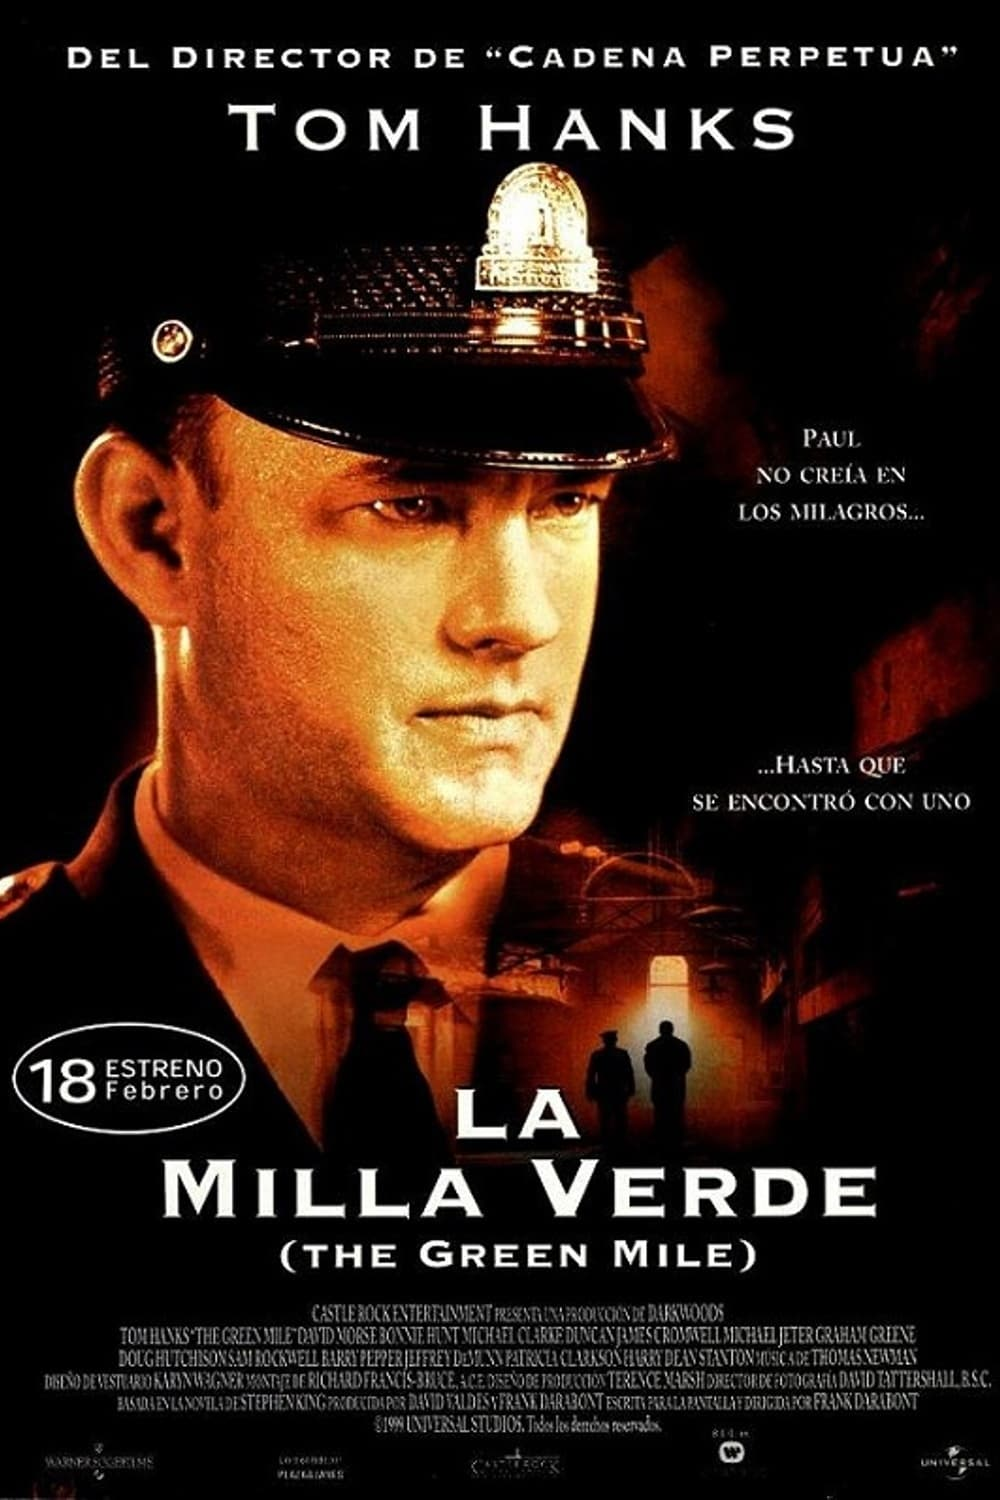 Poster and image movie Film Culoarul Mortii - Mila Verde - The Green Mile - The Green Mile -  1999